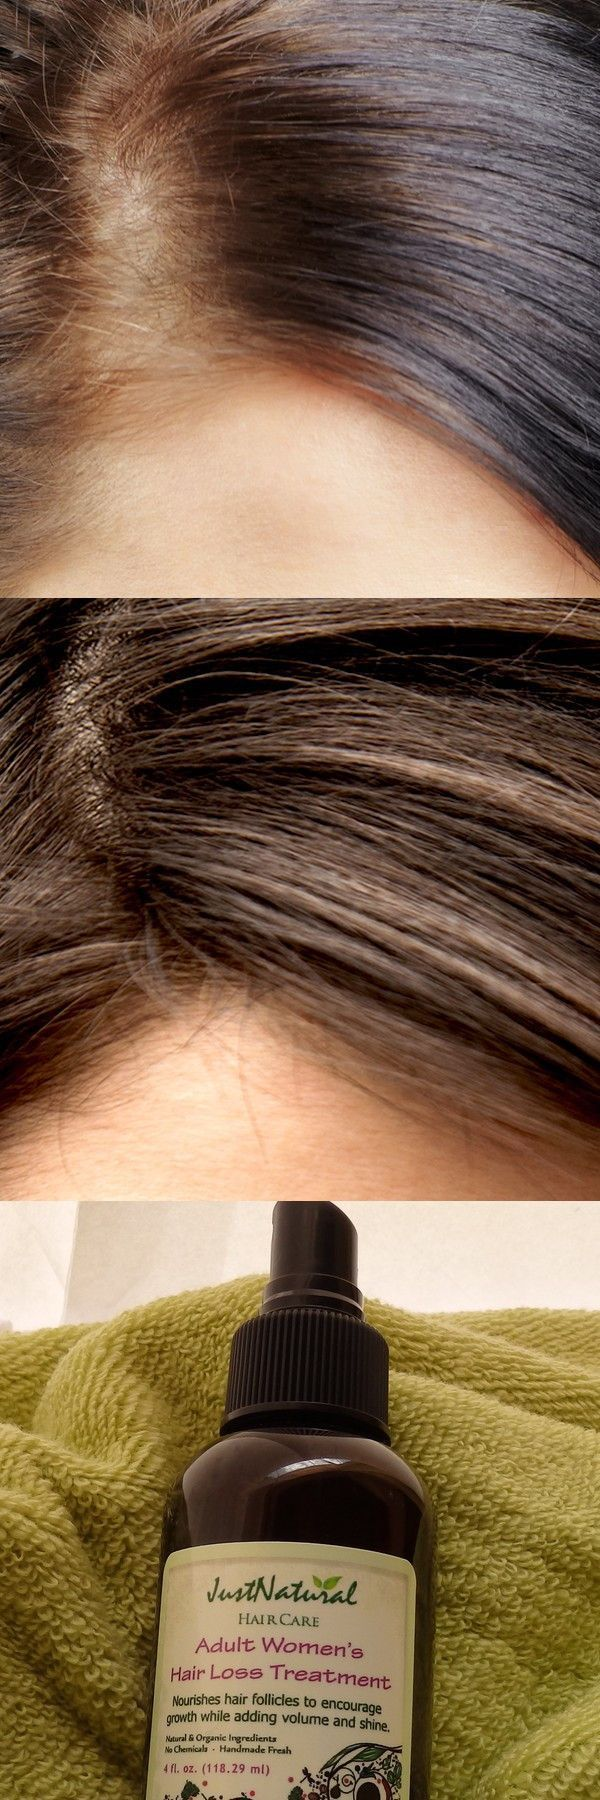 Adult Women's Hair Loss Treatment #hairlossremedymen #hairlossremedywomen